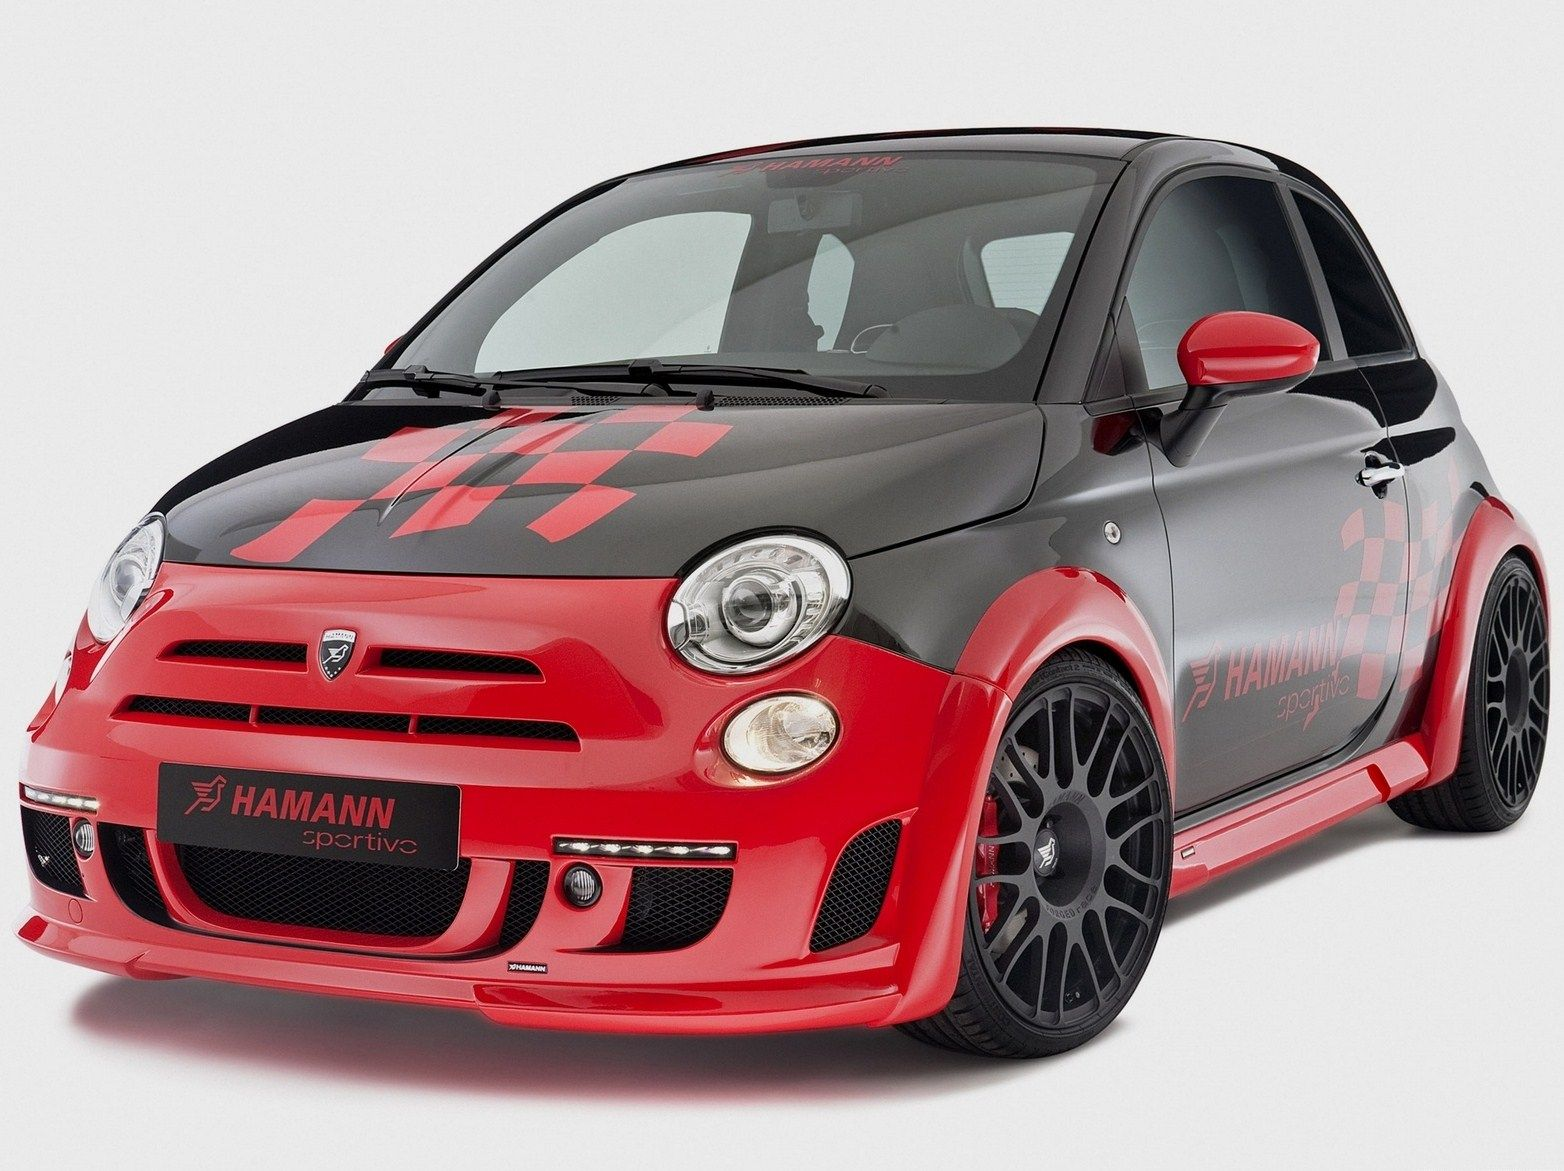 2019 Fiat 500 Abarth Esseesse With Images Fiat 500 Fiat Car Hd